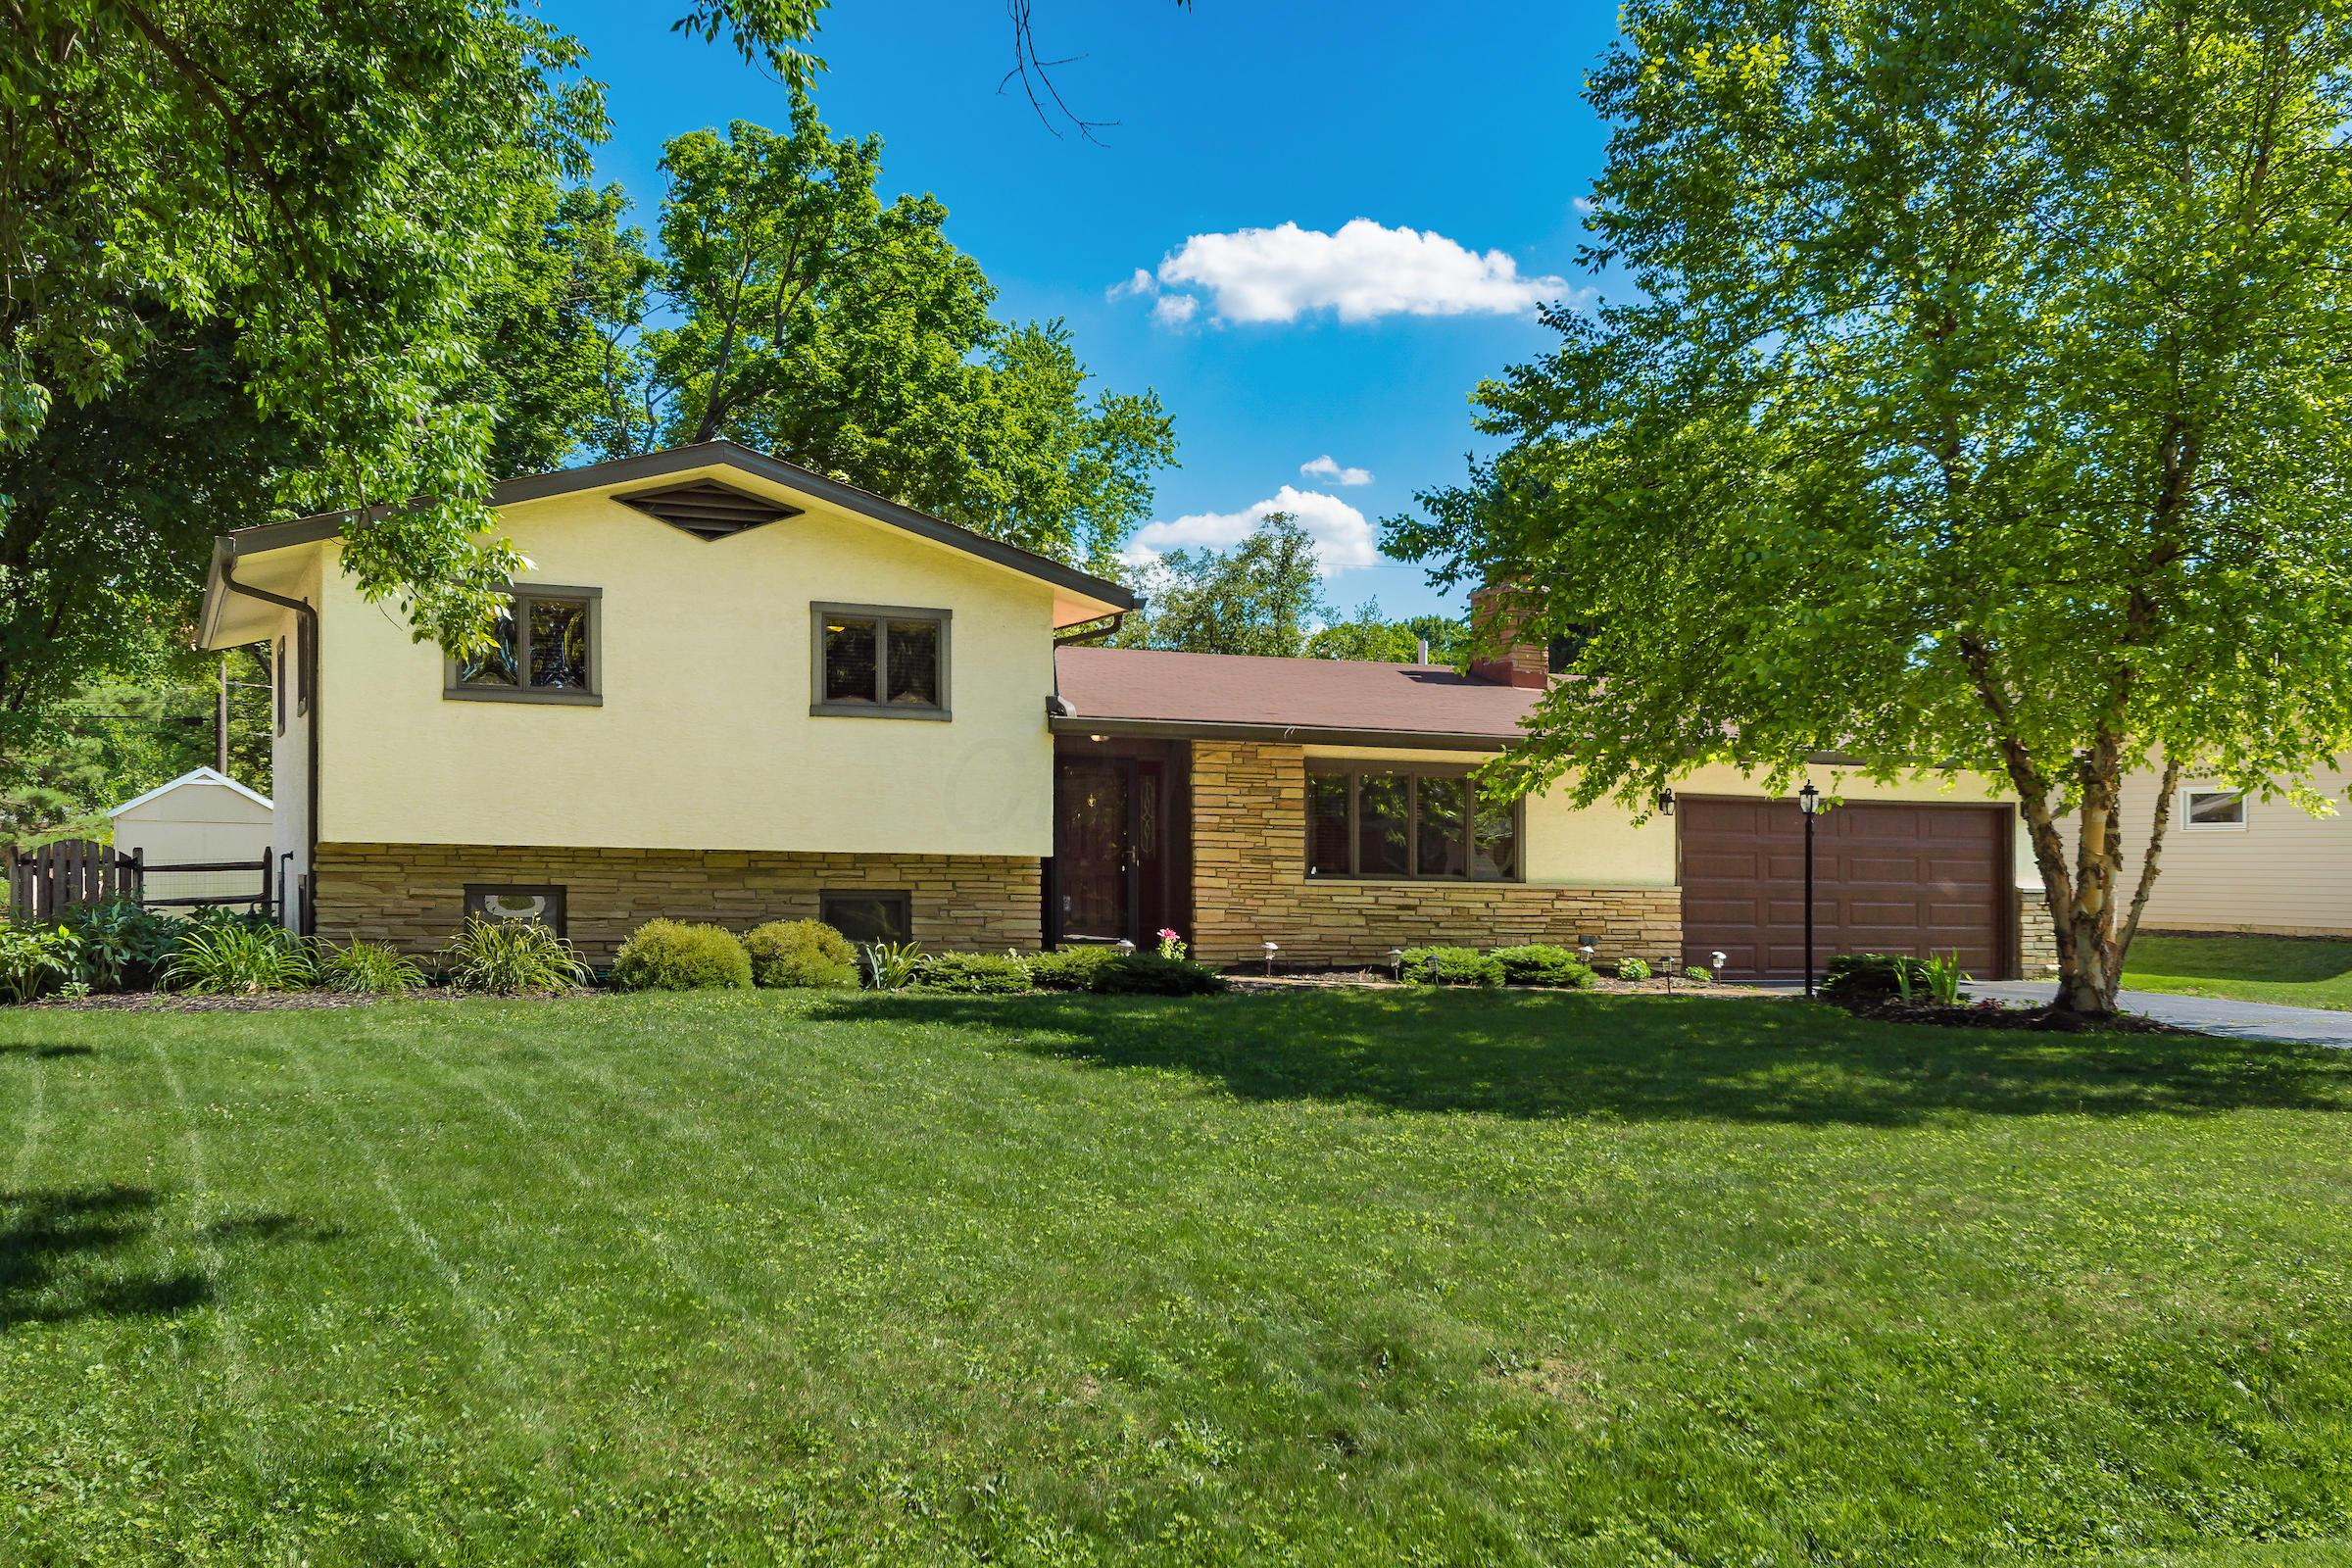 3301 Braidwood Drive, Hilliard, Ohio 43026, 4 Bedrooms Bedrooms, ,3 BathroomsBathrooms,Residential,For Sale,Braidwood,220021453